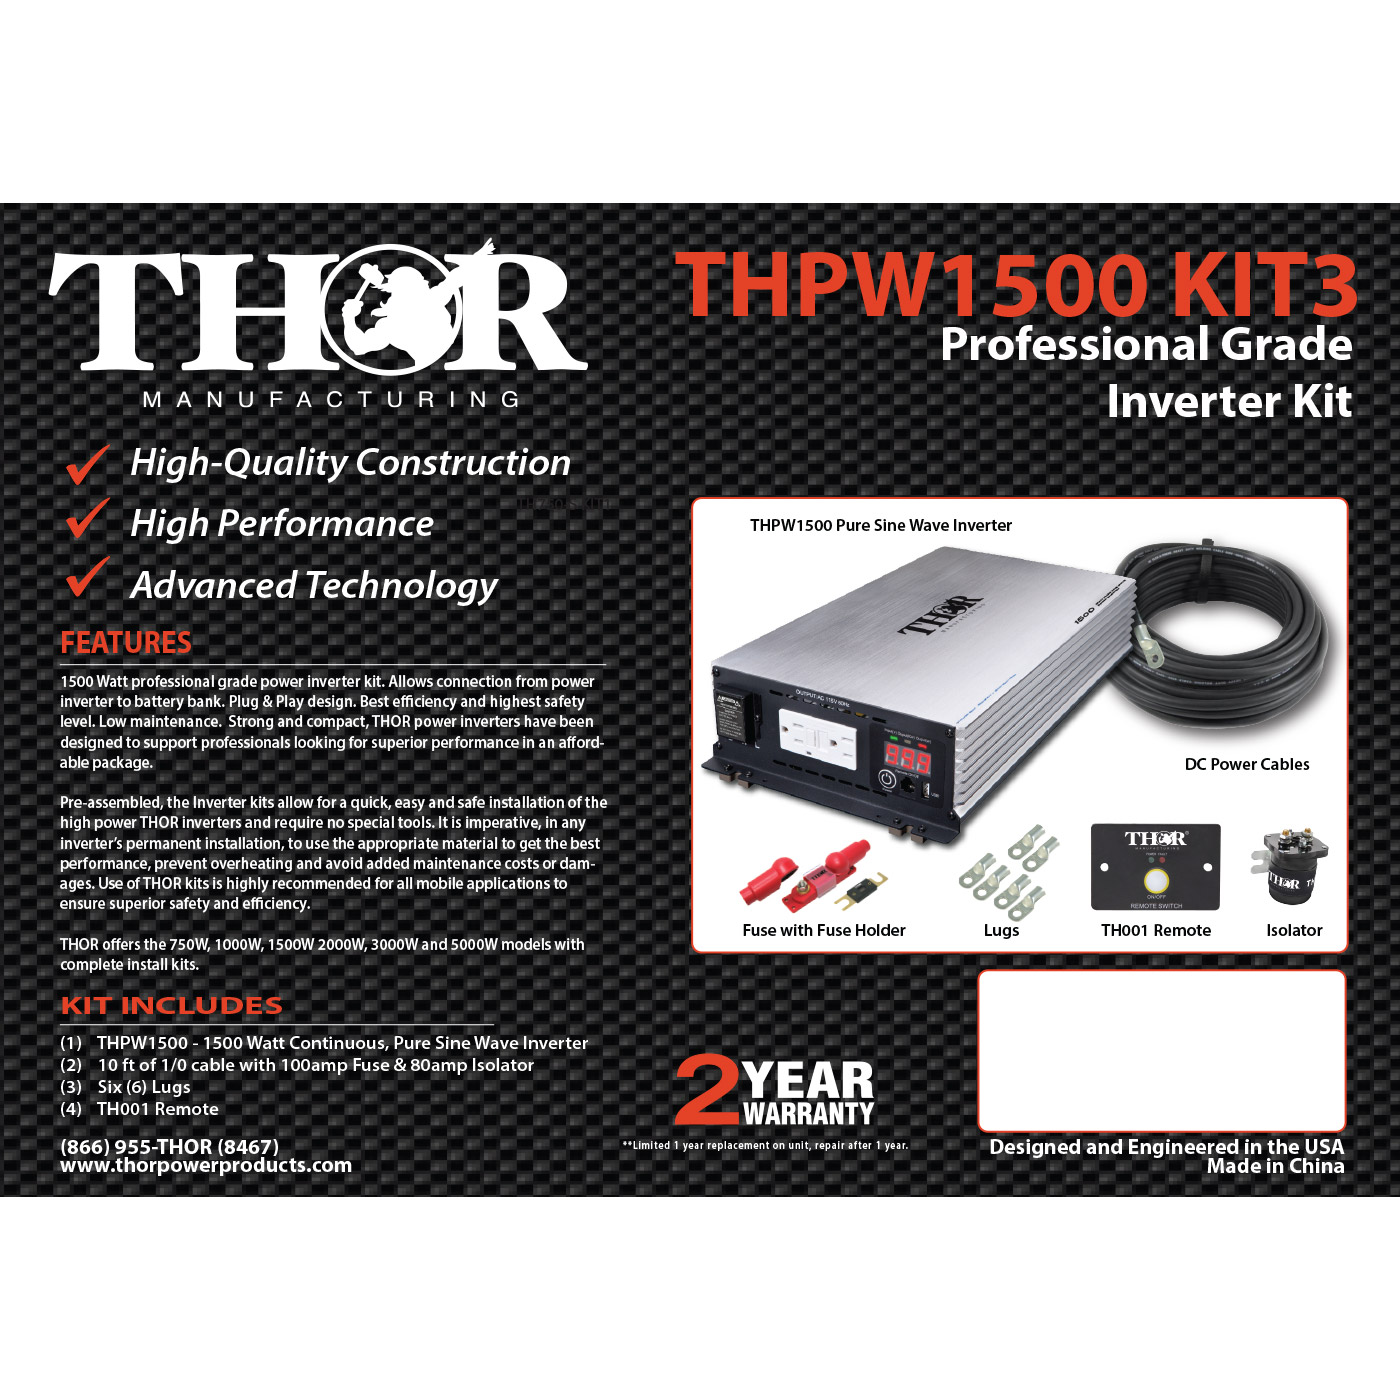 thpw1500kit3-label